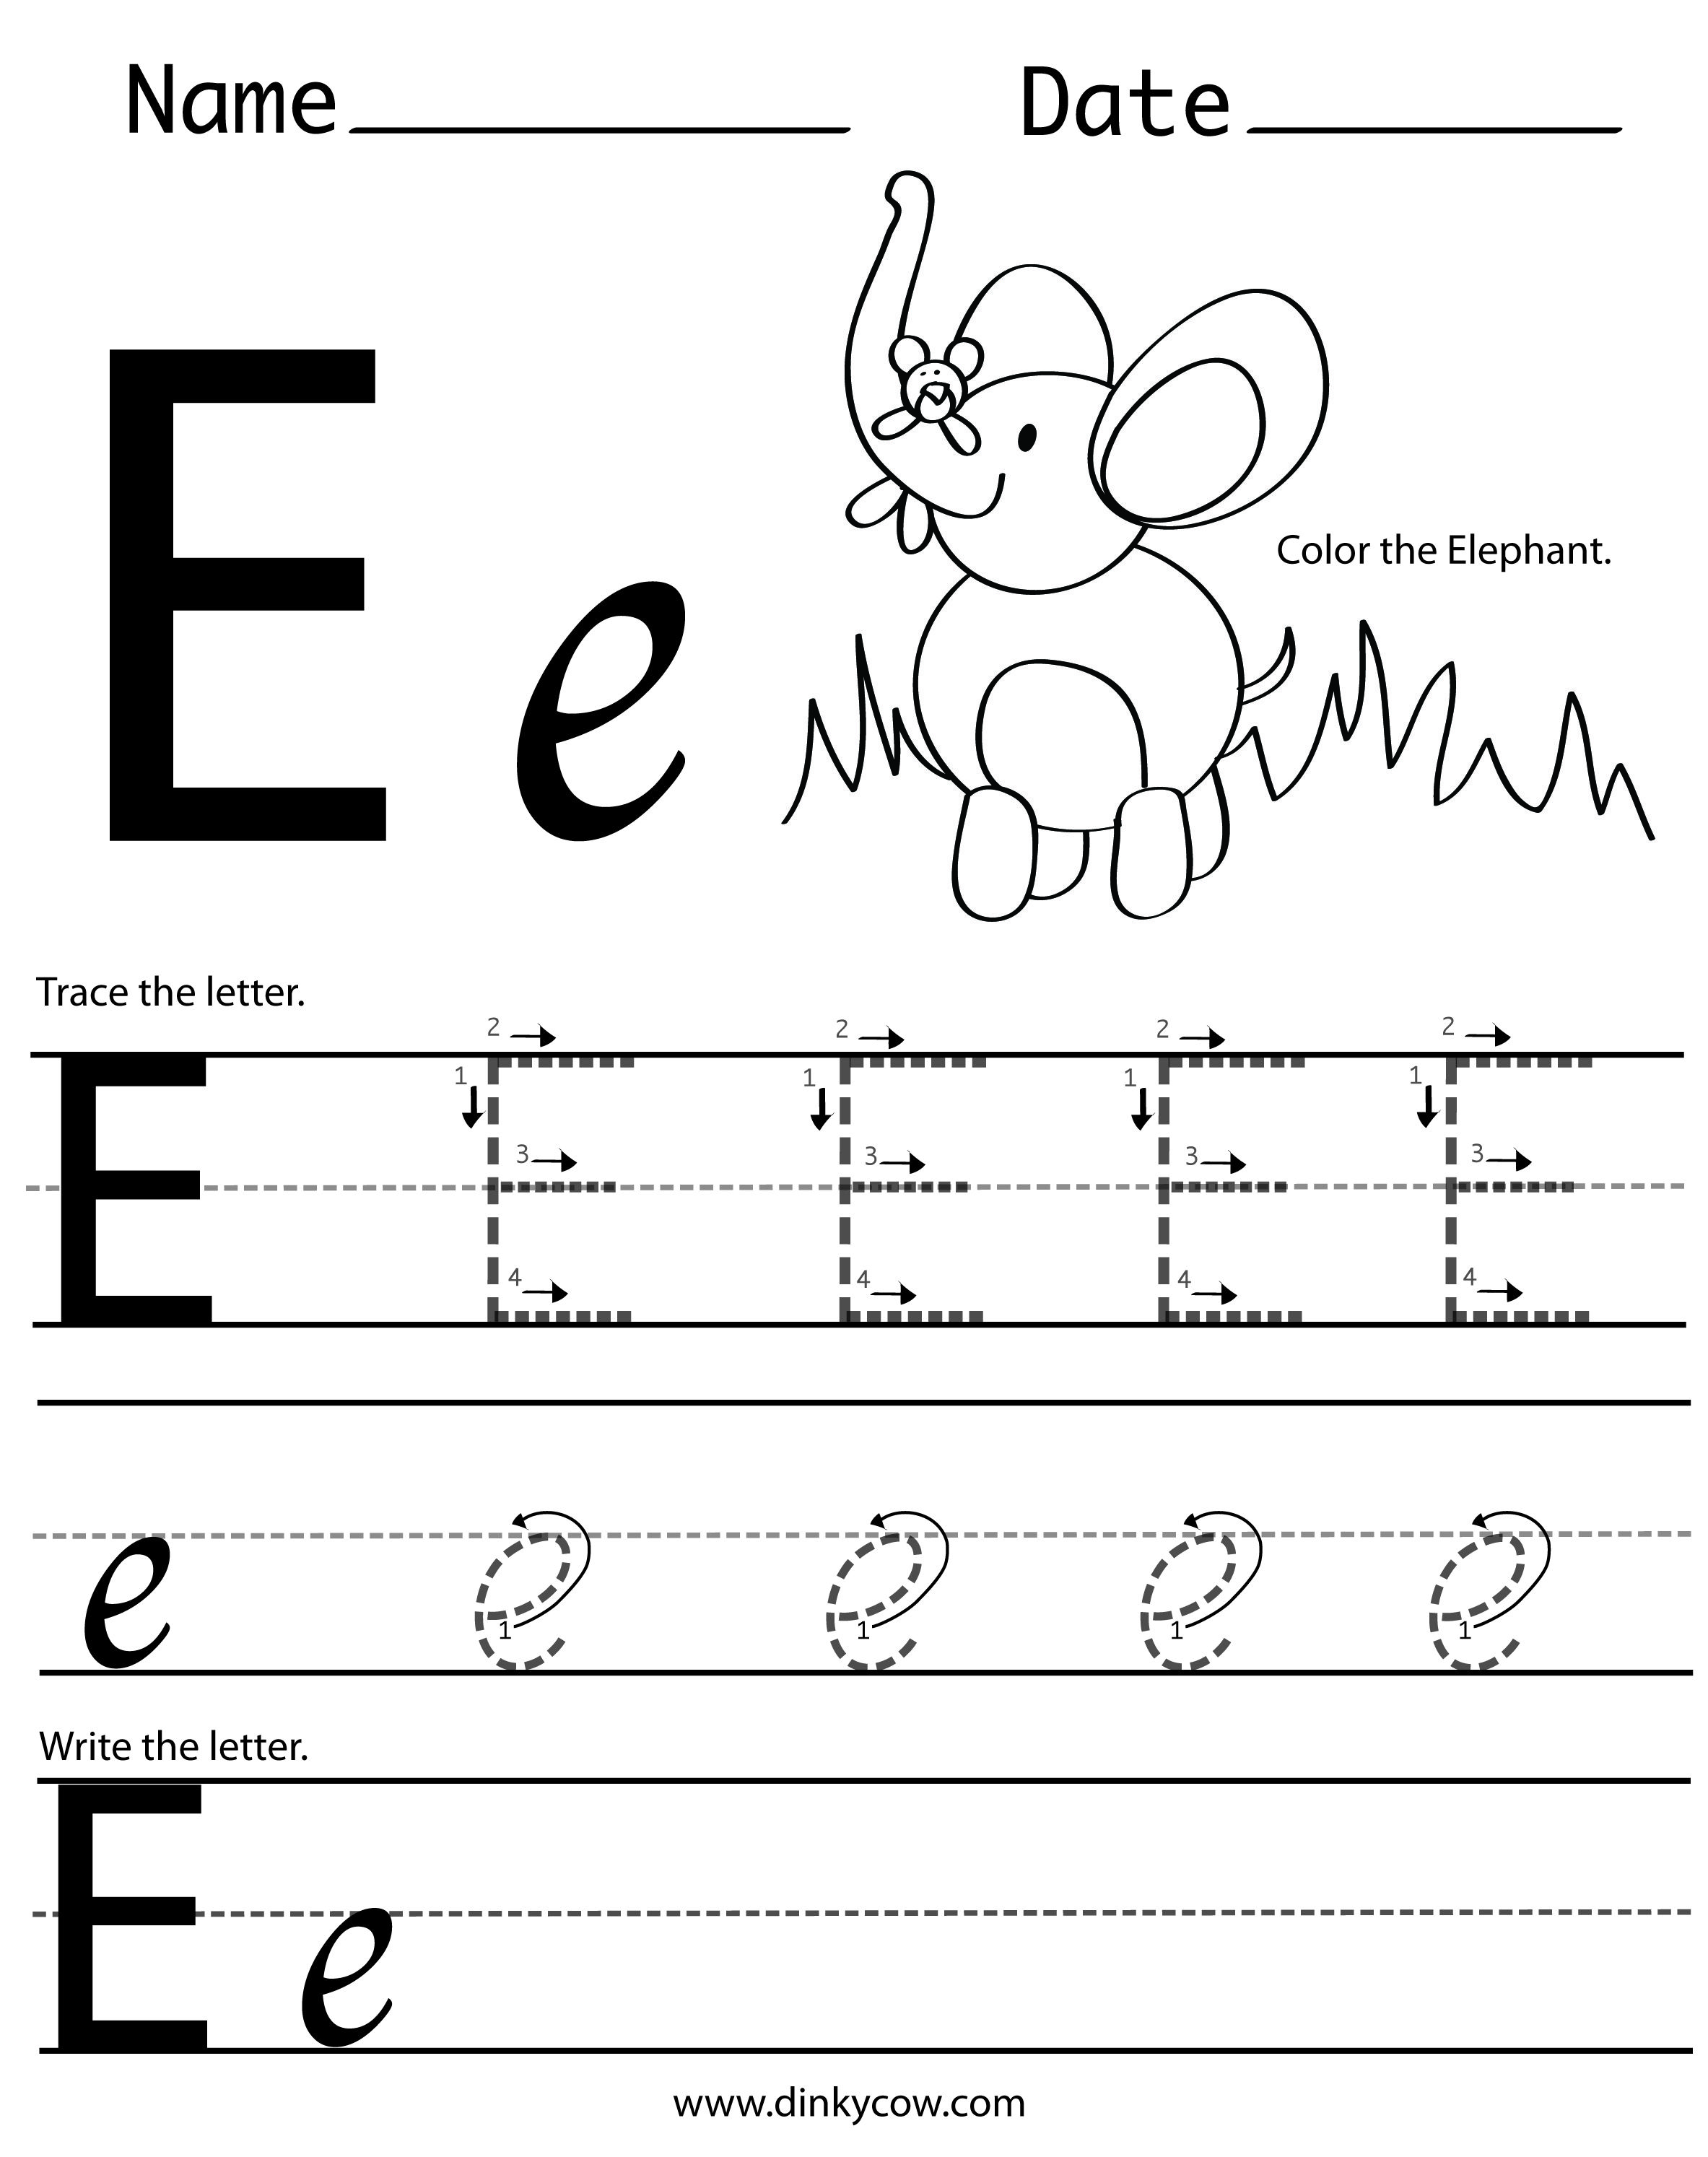 Worksheets Letter E Worksheets For Preschool Opossumsoft T